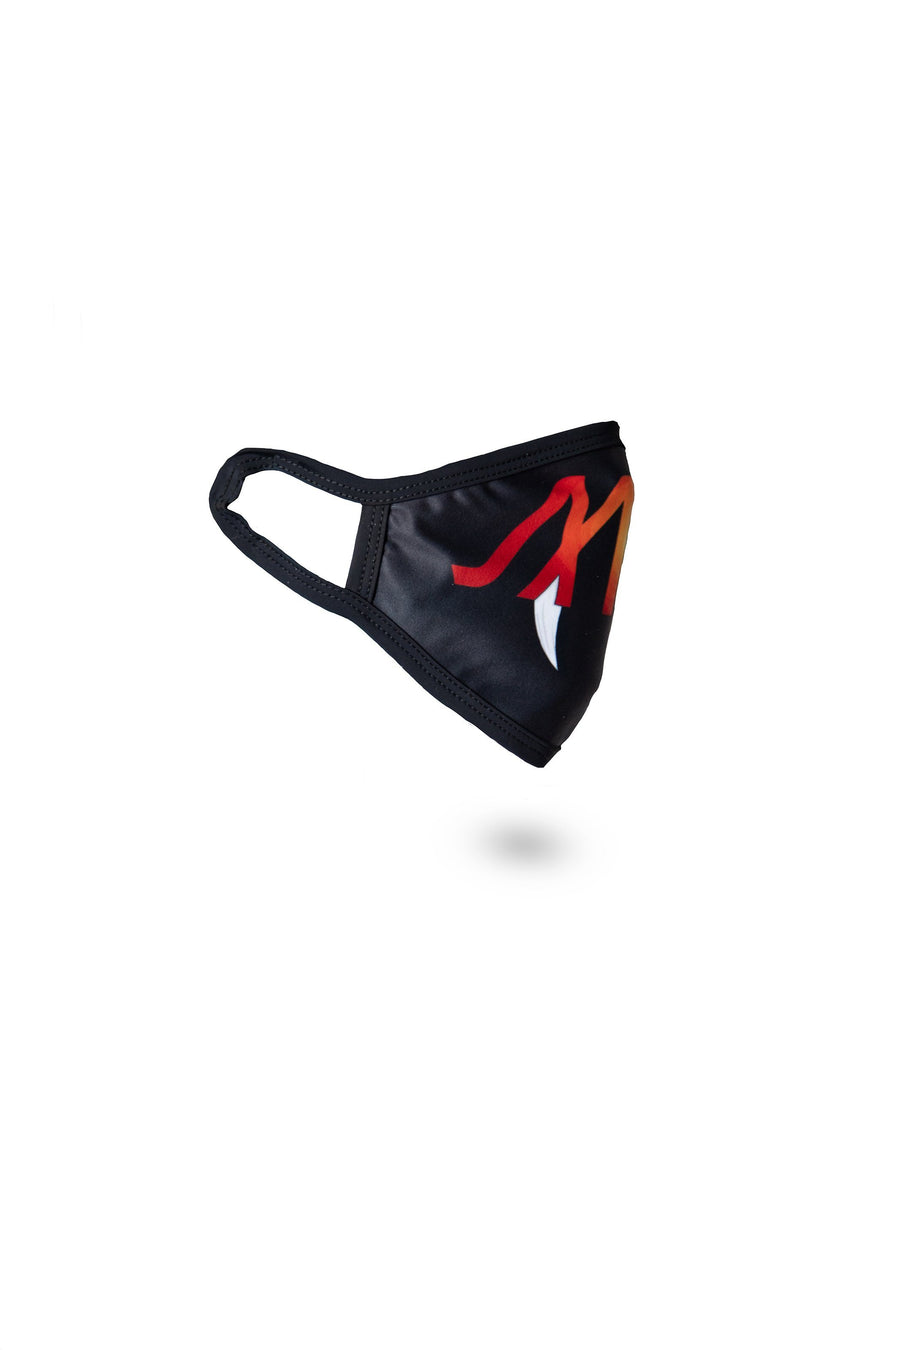 Designer Mens Underwear | Marco Marco | A Scar is Born Mask